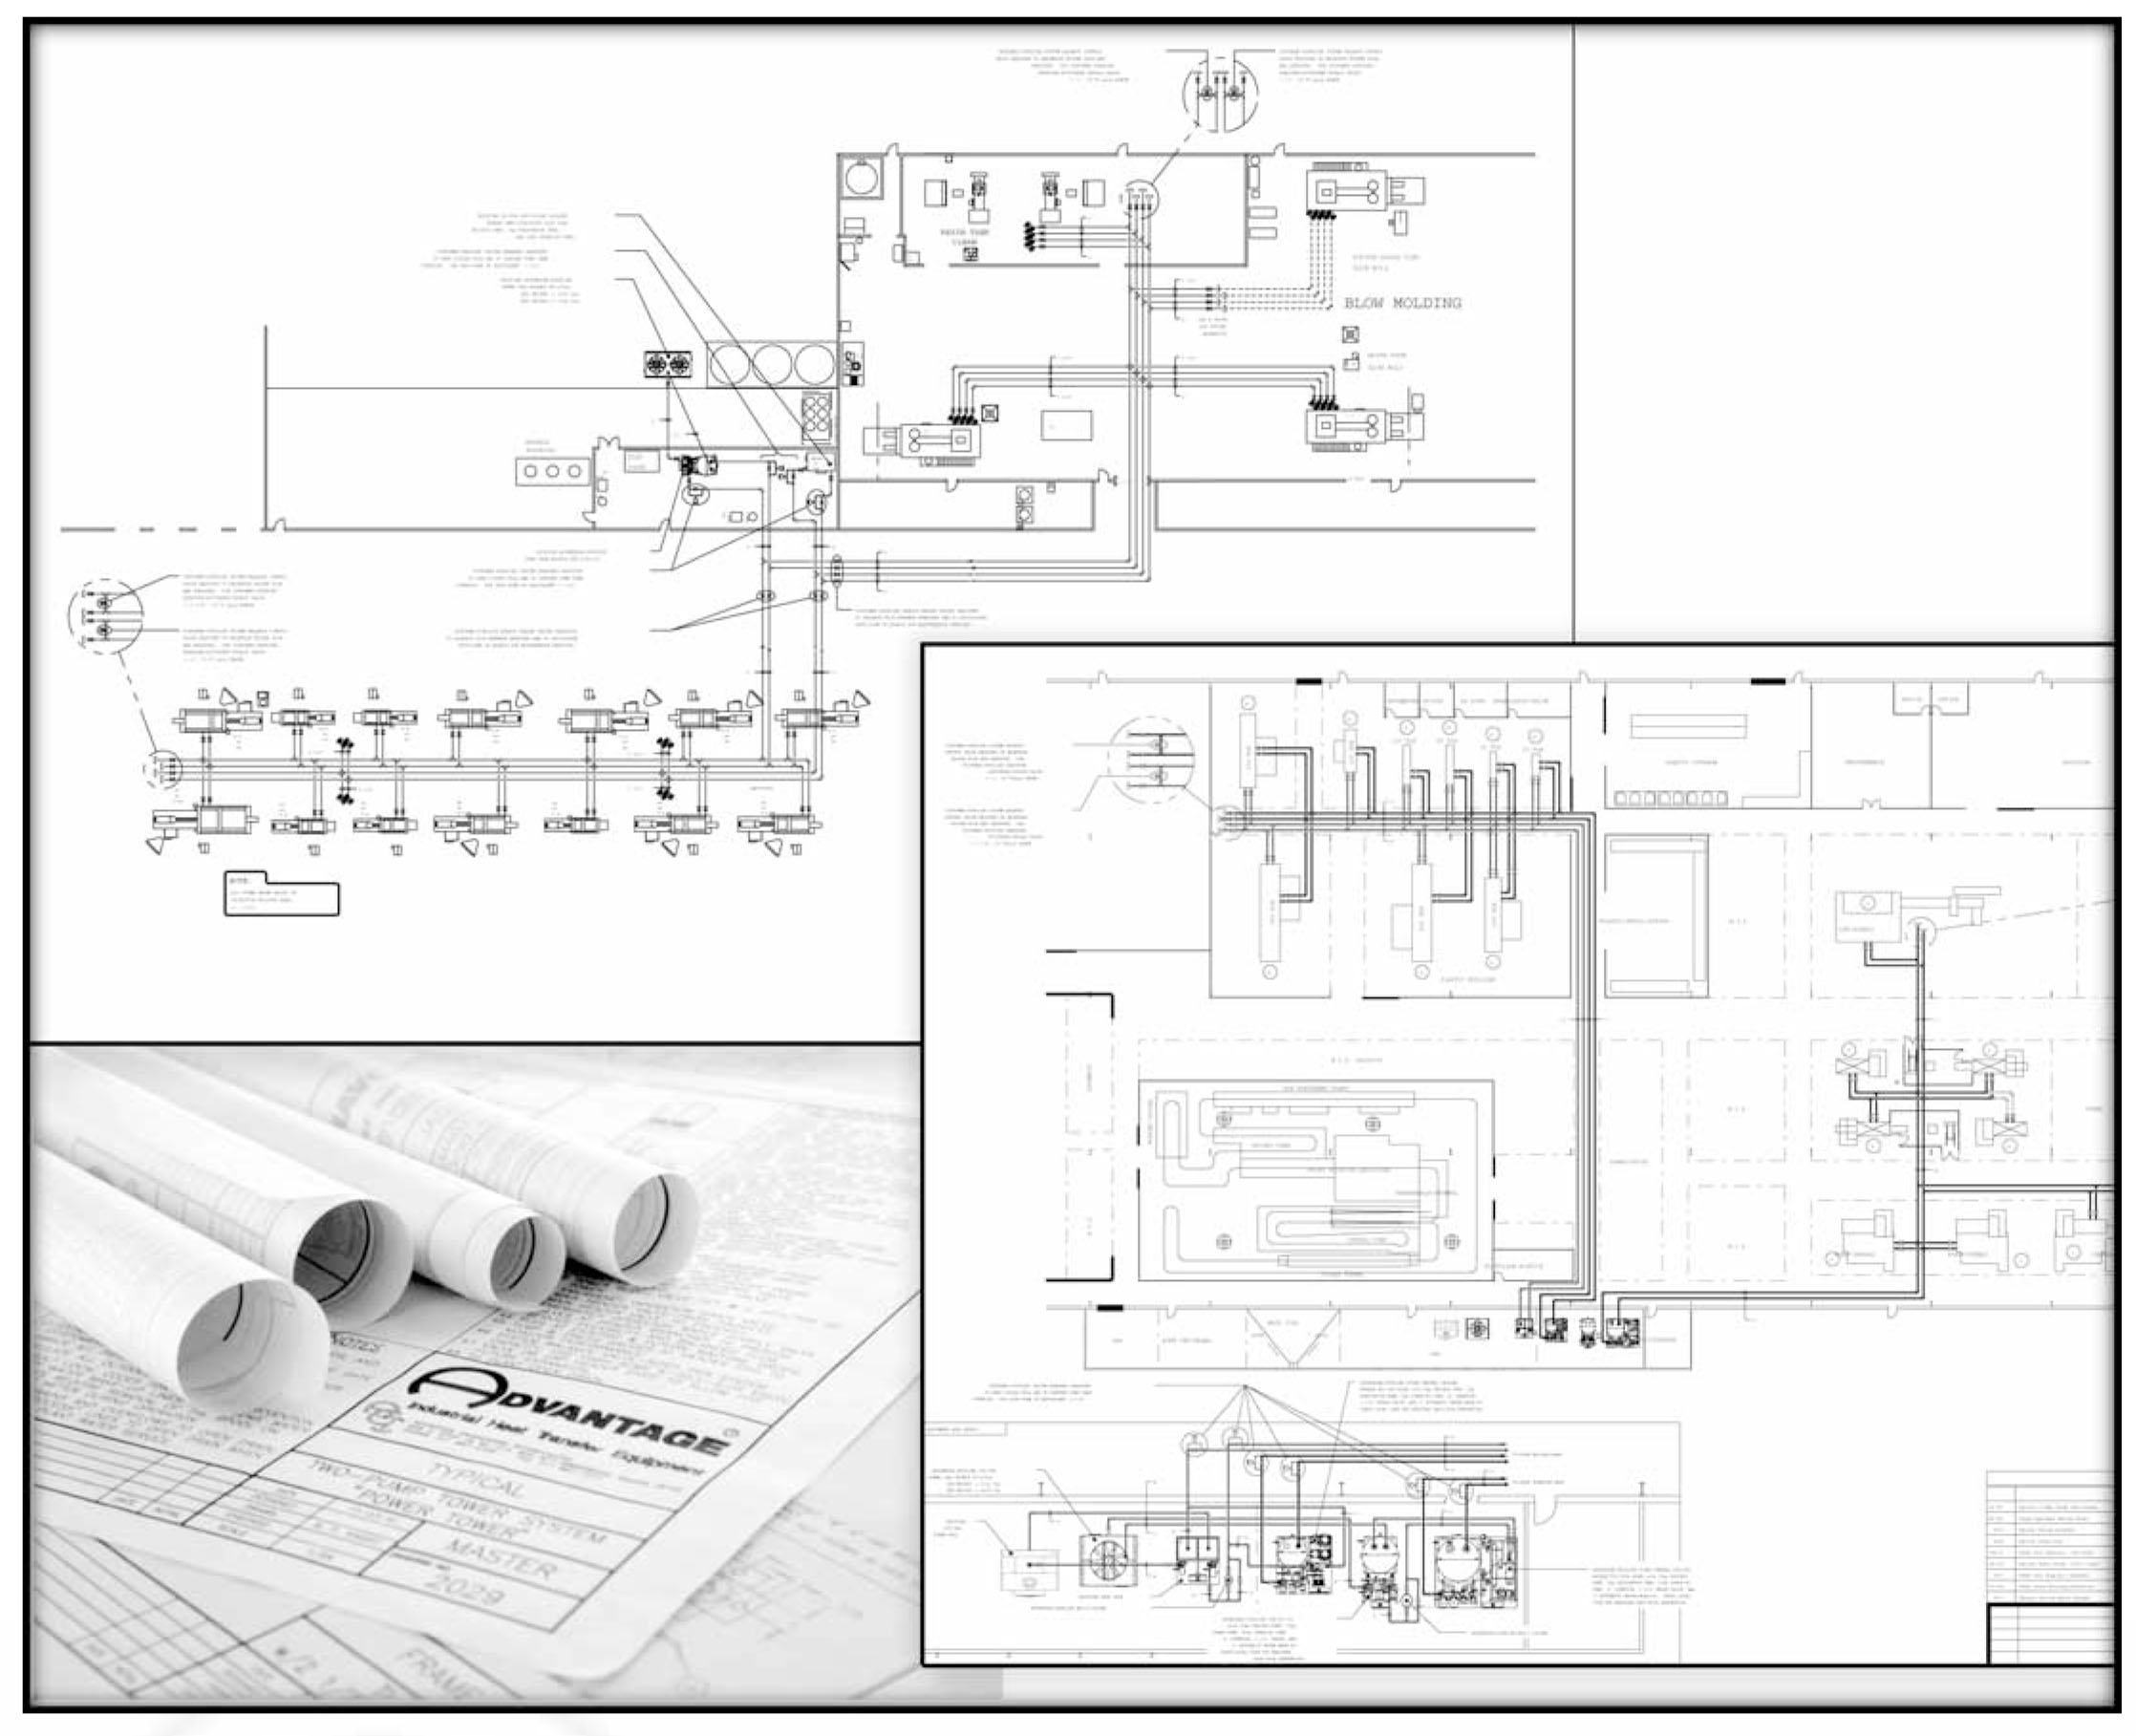 Piping Layout Drawings Pictures Wiring Library Design Book Customer Plant Drawing